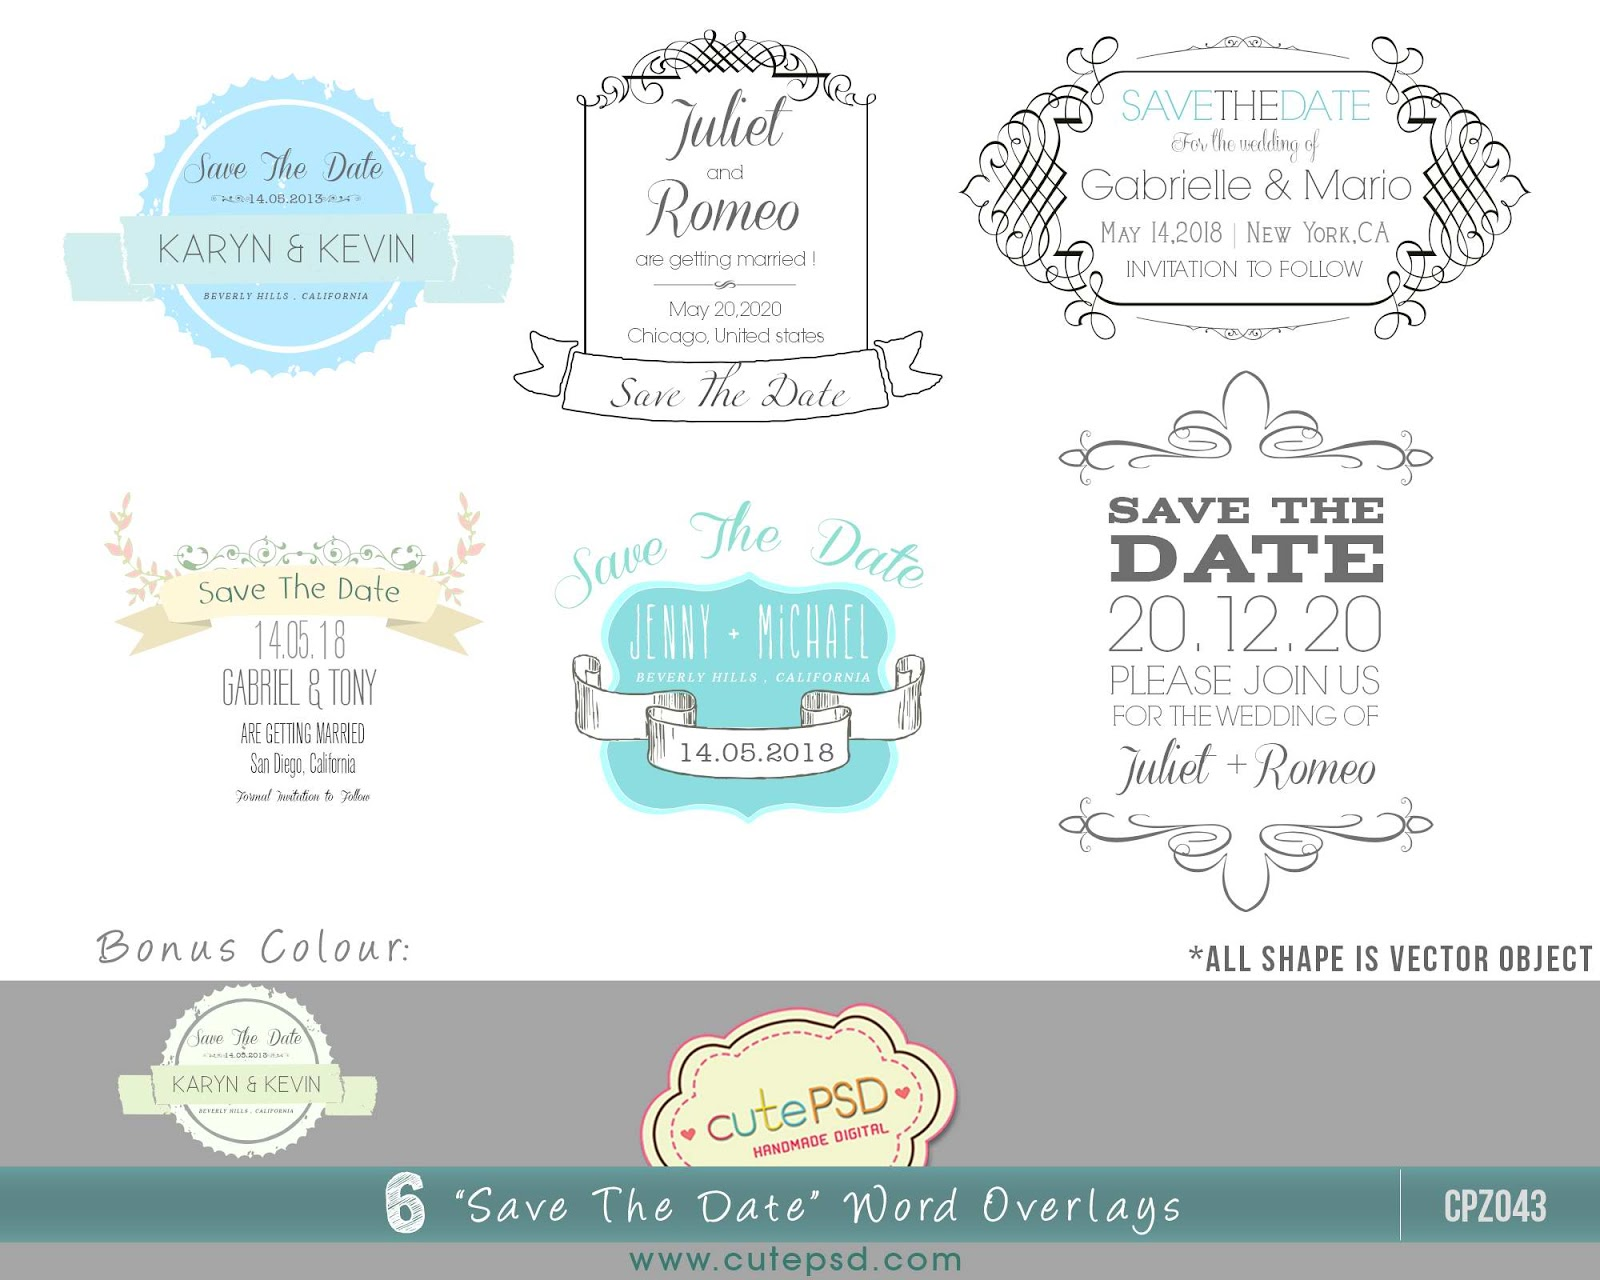 Brand-new Cute Psd Studio: Save-the-date Photo Overlays Photoshop Template  RO53